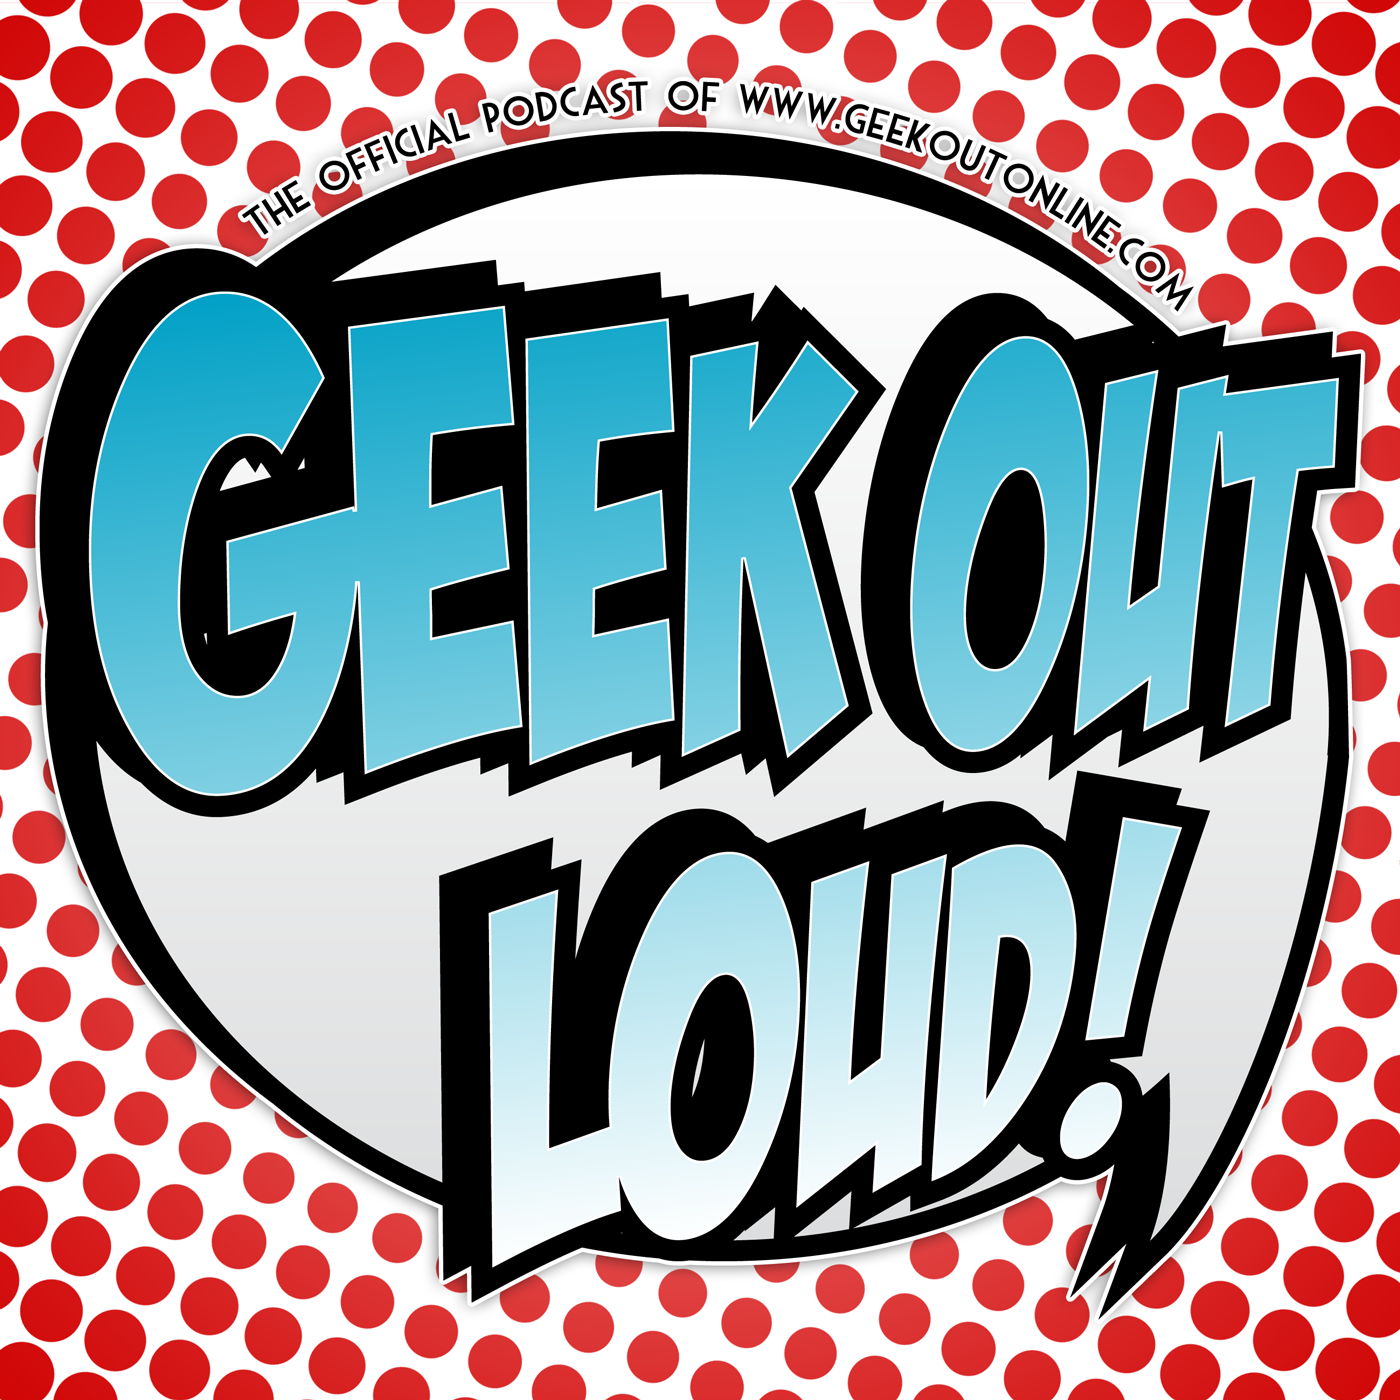 Geek Out Loud